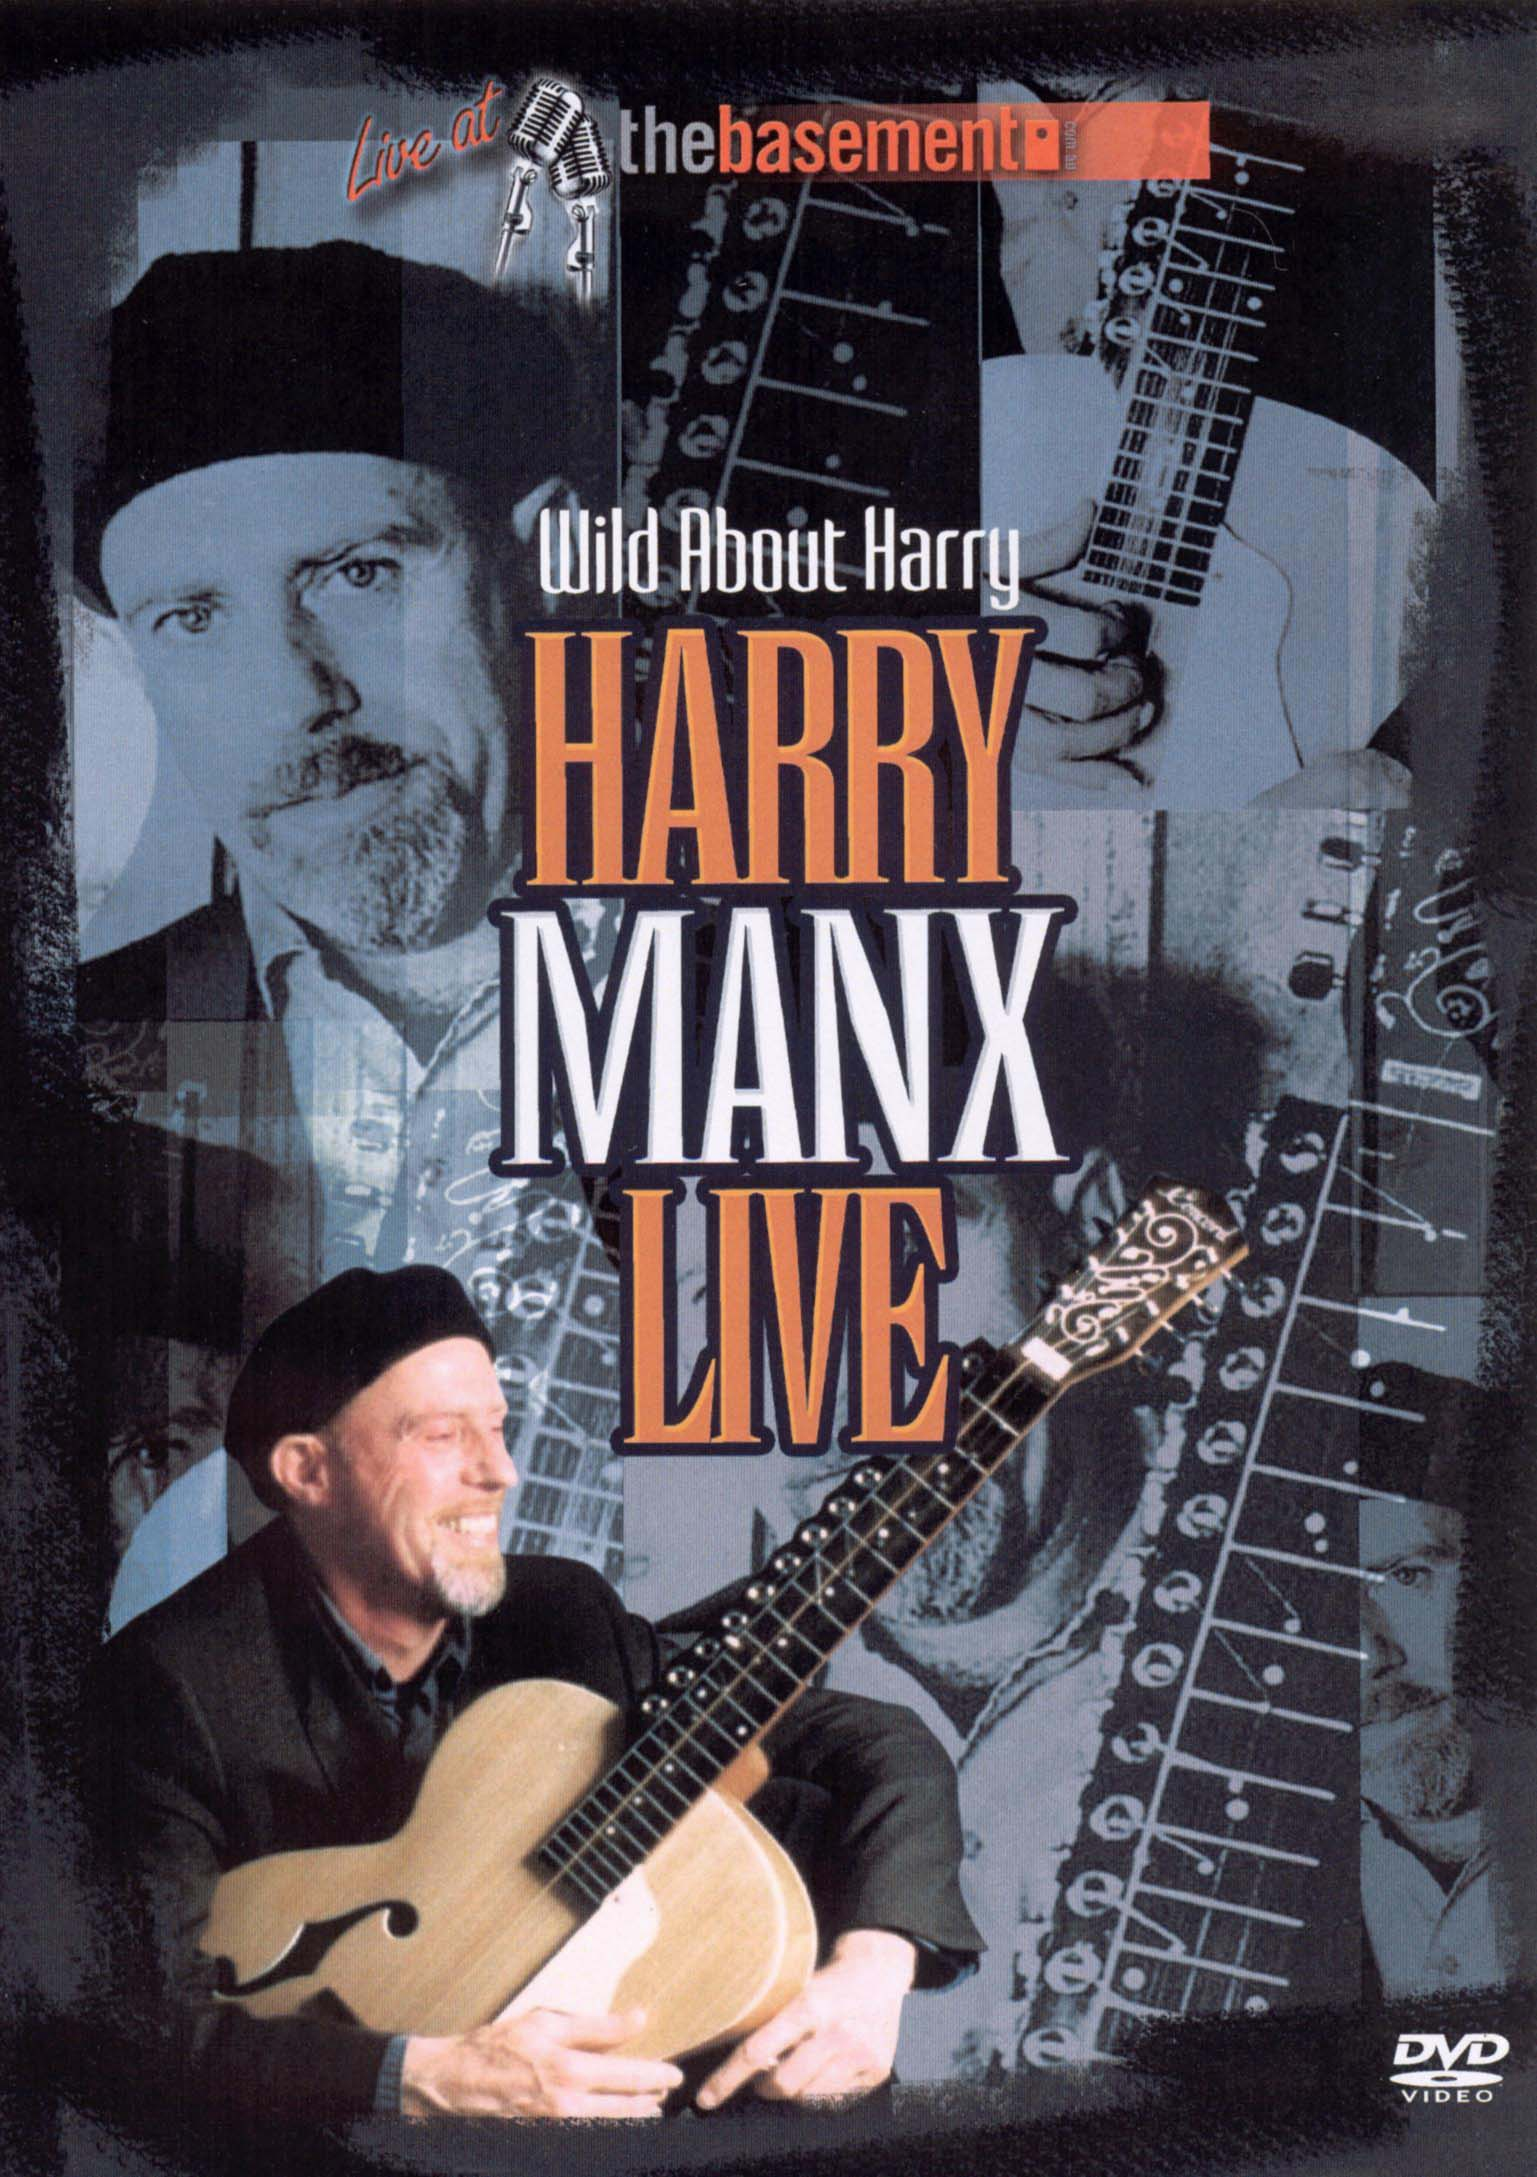 Harry Manx: Wild About Harry - Live At the Basement